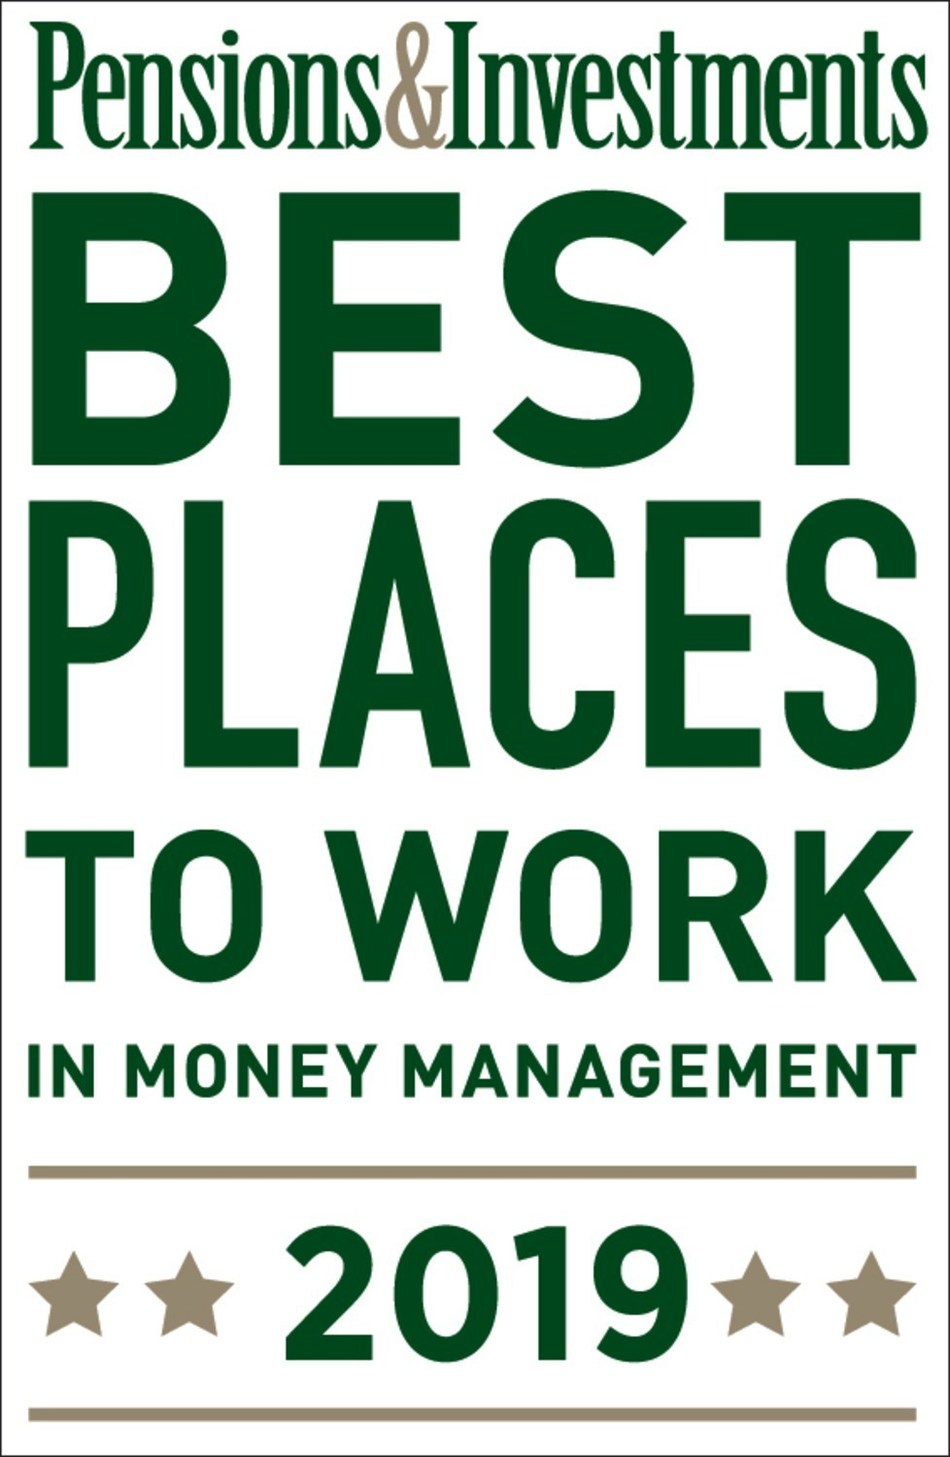 Highland Capital Management, Dallas-based investment management platform, wins Pensions & Investments' 2019 Best Places to Work in Money Management award.